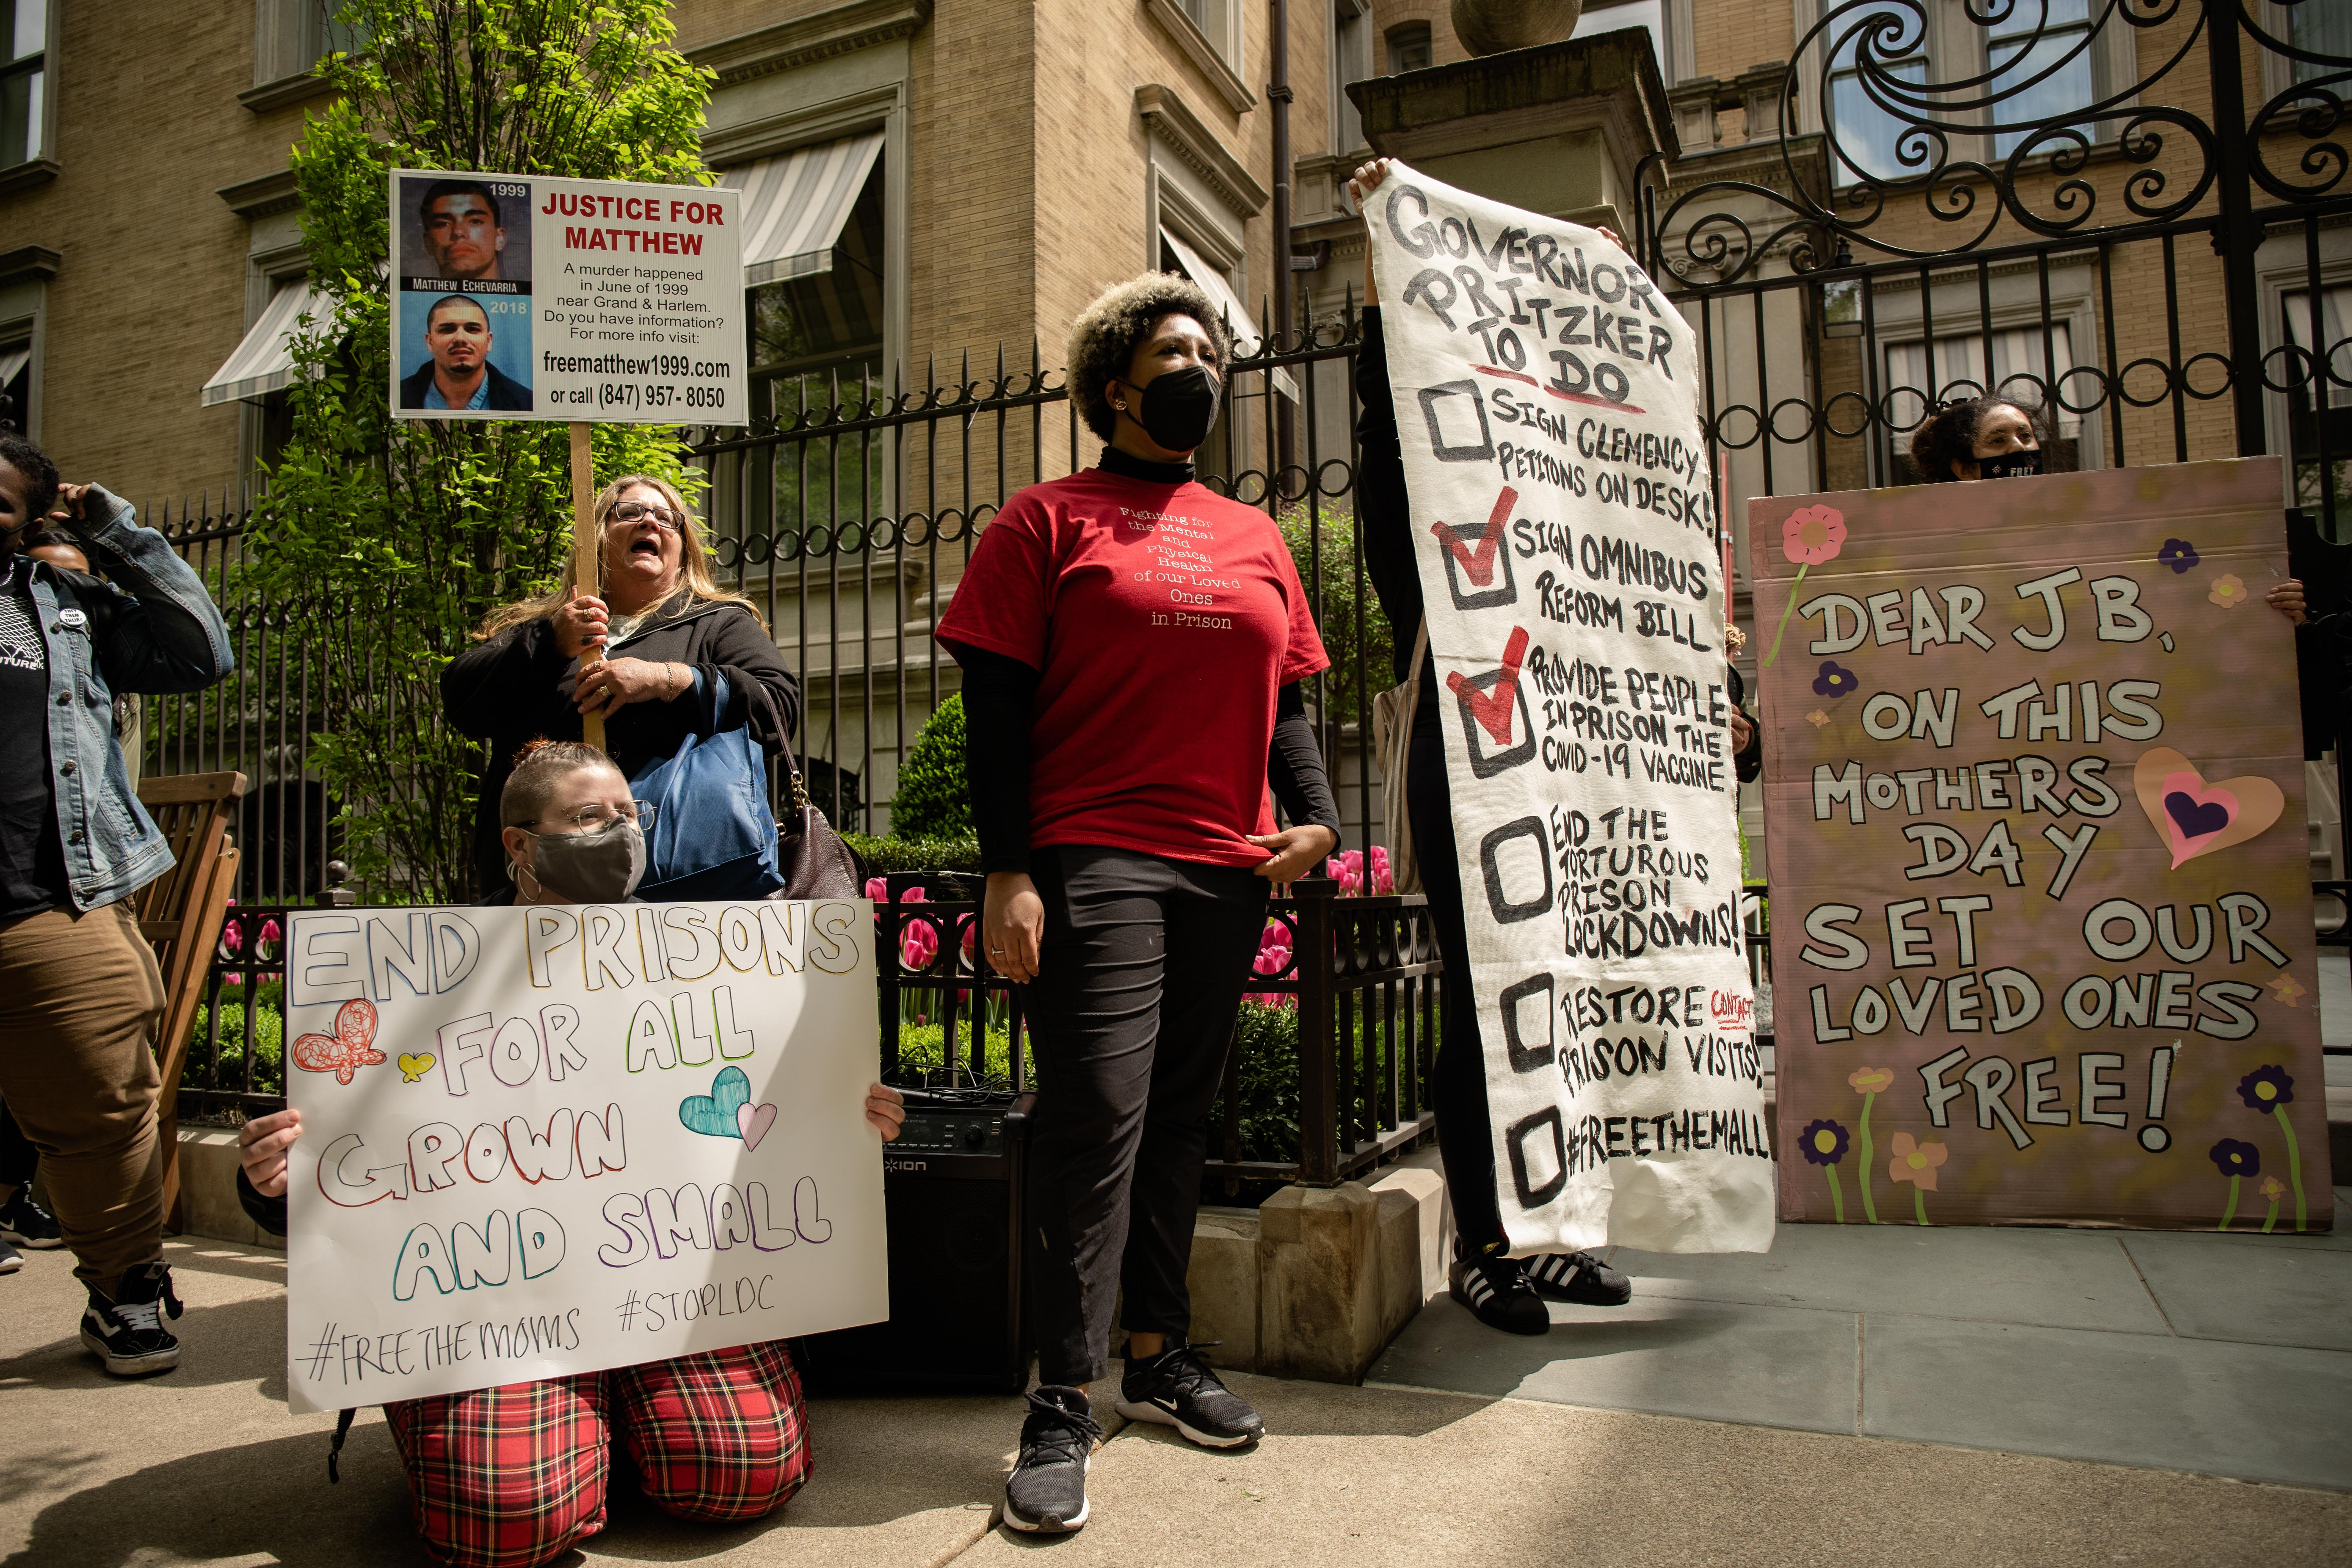 Mothers of incarcerated people, joined by other prisoners' rights advocates, stand in front of Gov. J.B. Pritzker's home in Lincoln Park on Friday morning, May 7, 2021. They demanded Gov. Pritzker to resume contact visits in Illinois prisons, sign clemencies and stop the construction of the Illinois Youth Center.